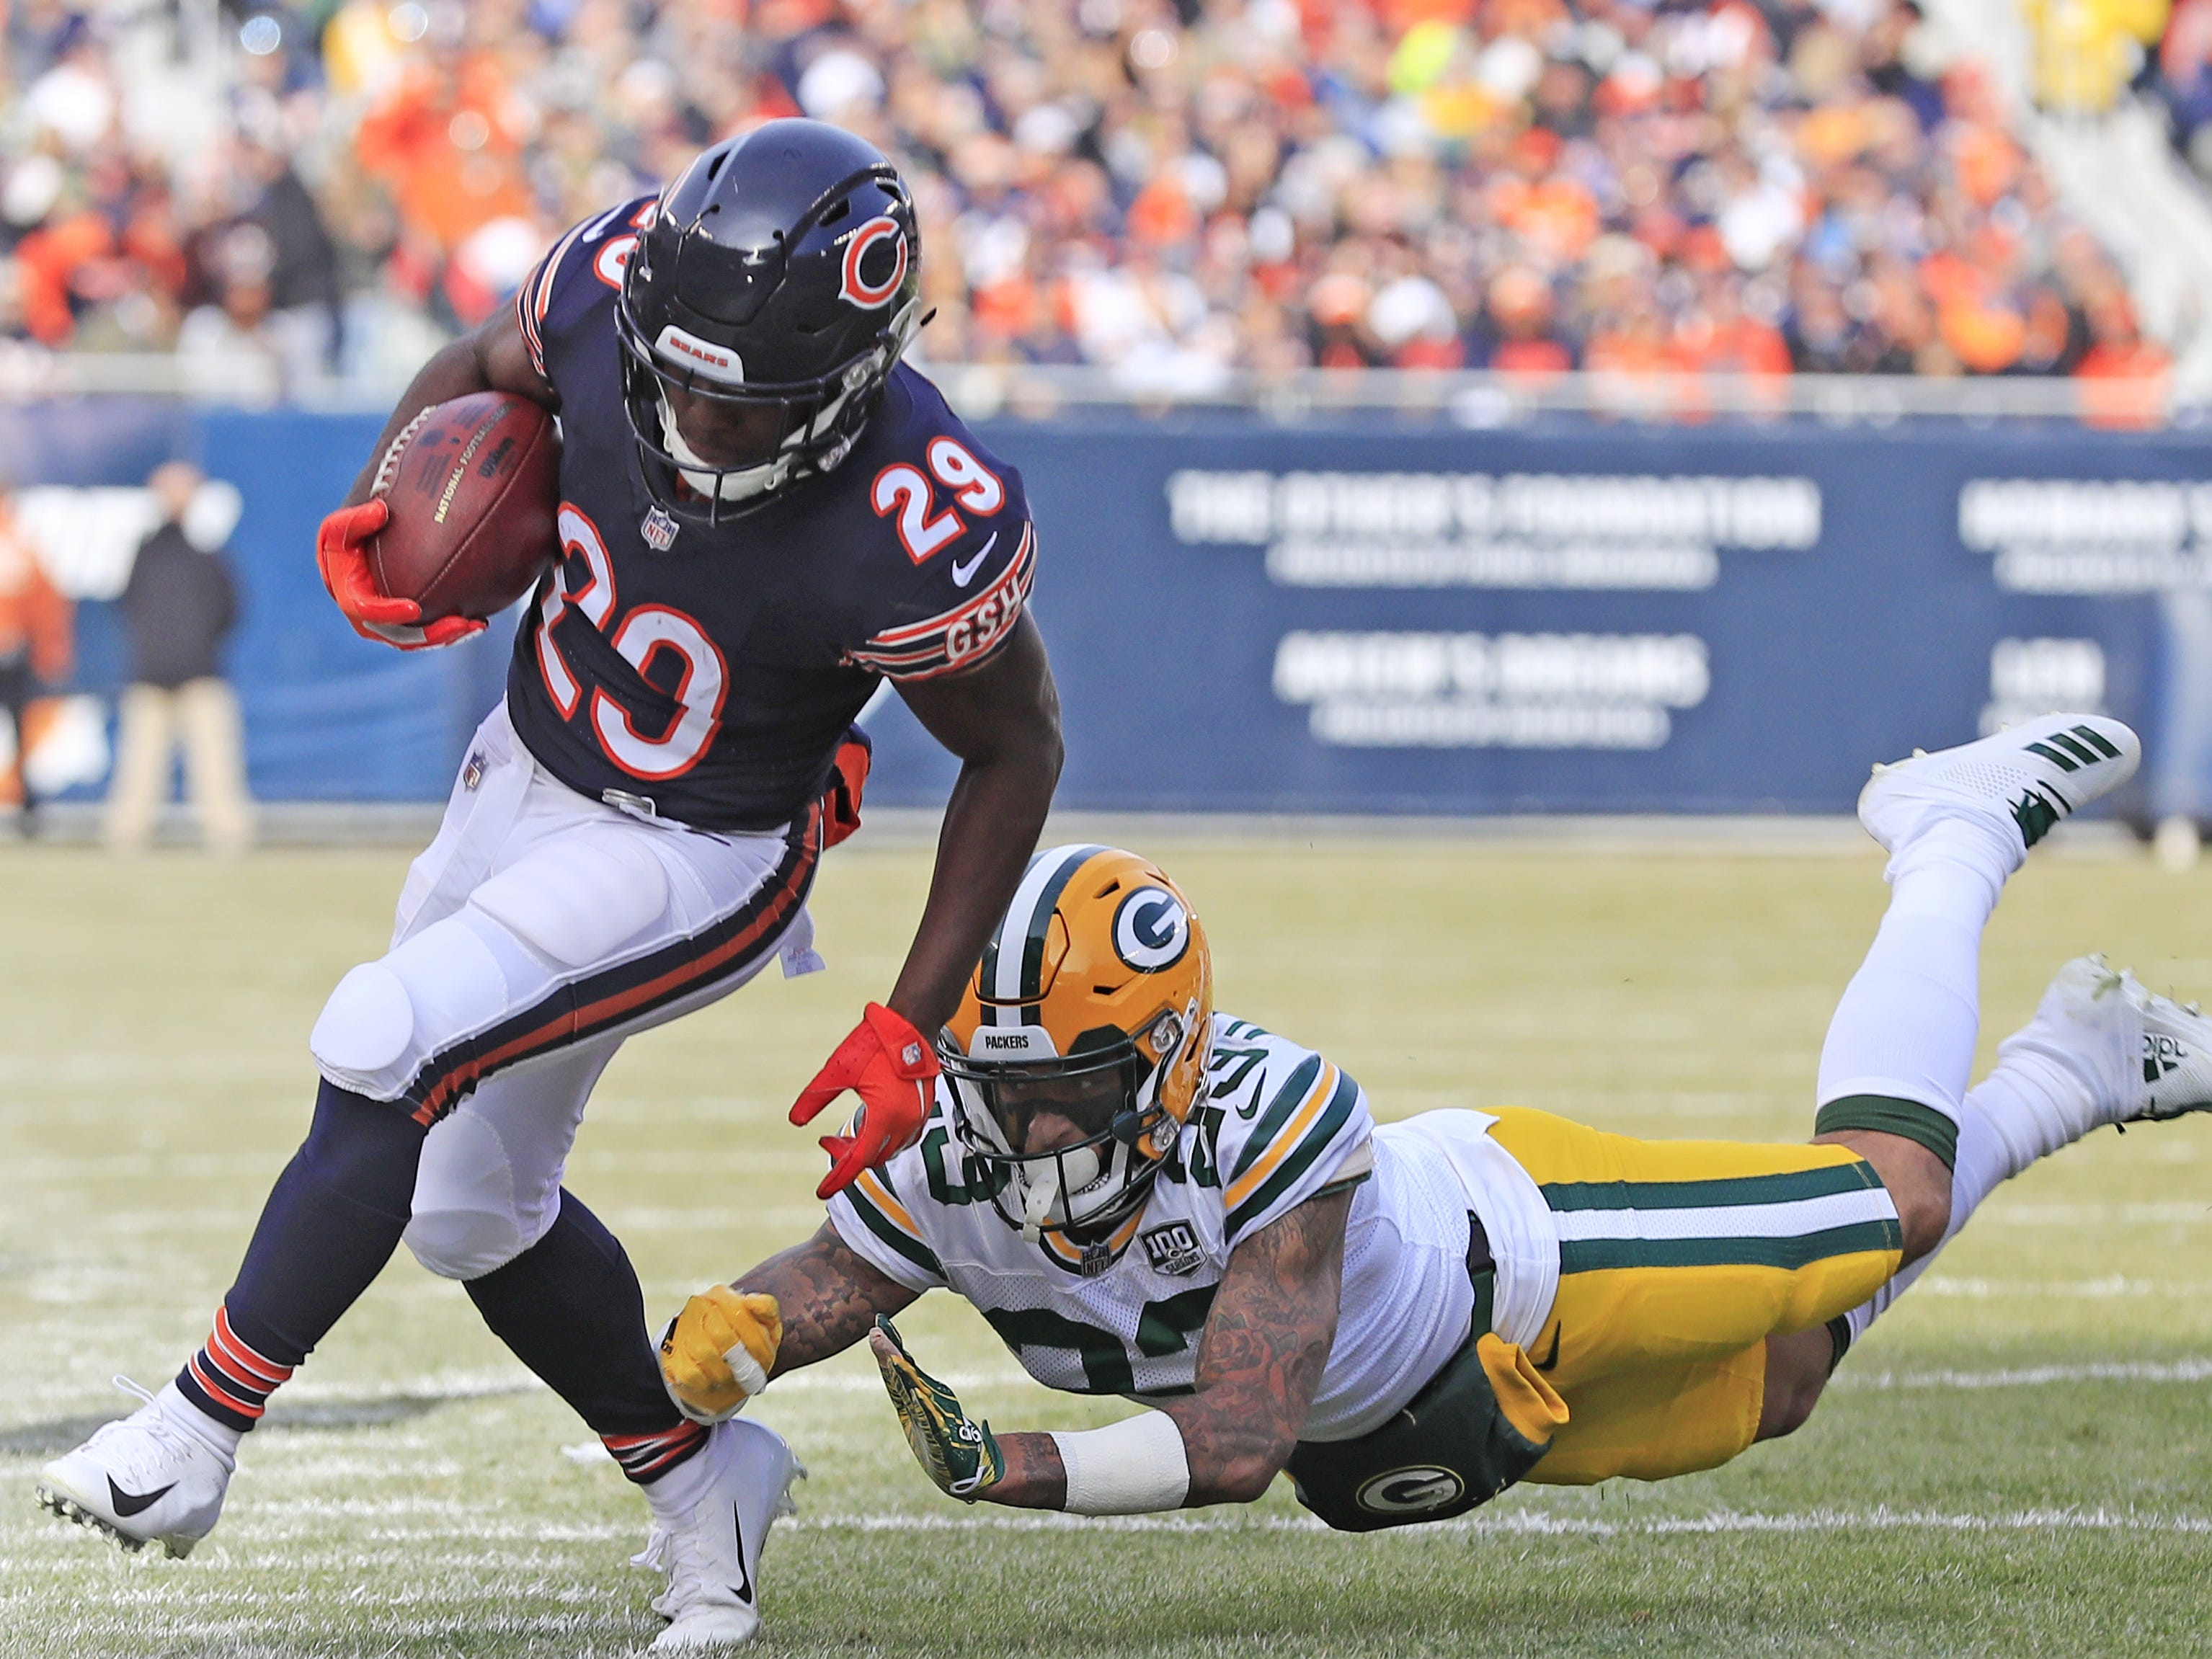 Green Bay Packers cornerback Jaire Alexander (23) knocks Chicago Bears running back Tarik Cohen (29) out of bounds in the first quarter at Soldier Field on Sunday, December 16, 2018 in Chicago, Illinois. Adam Wesley/USA TODAY NETWORK-Wis